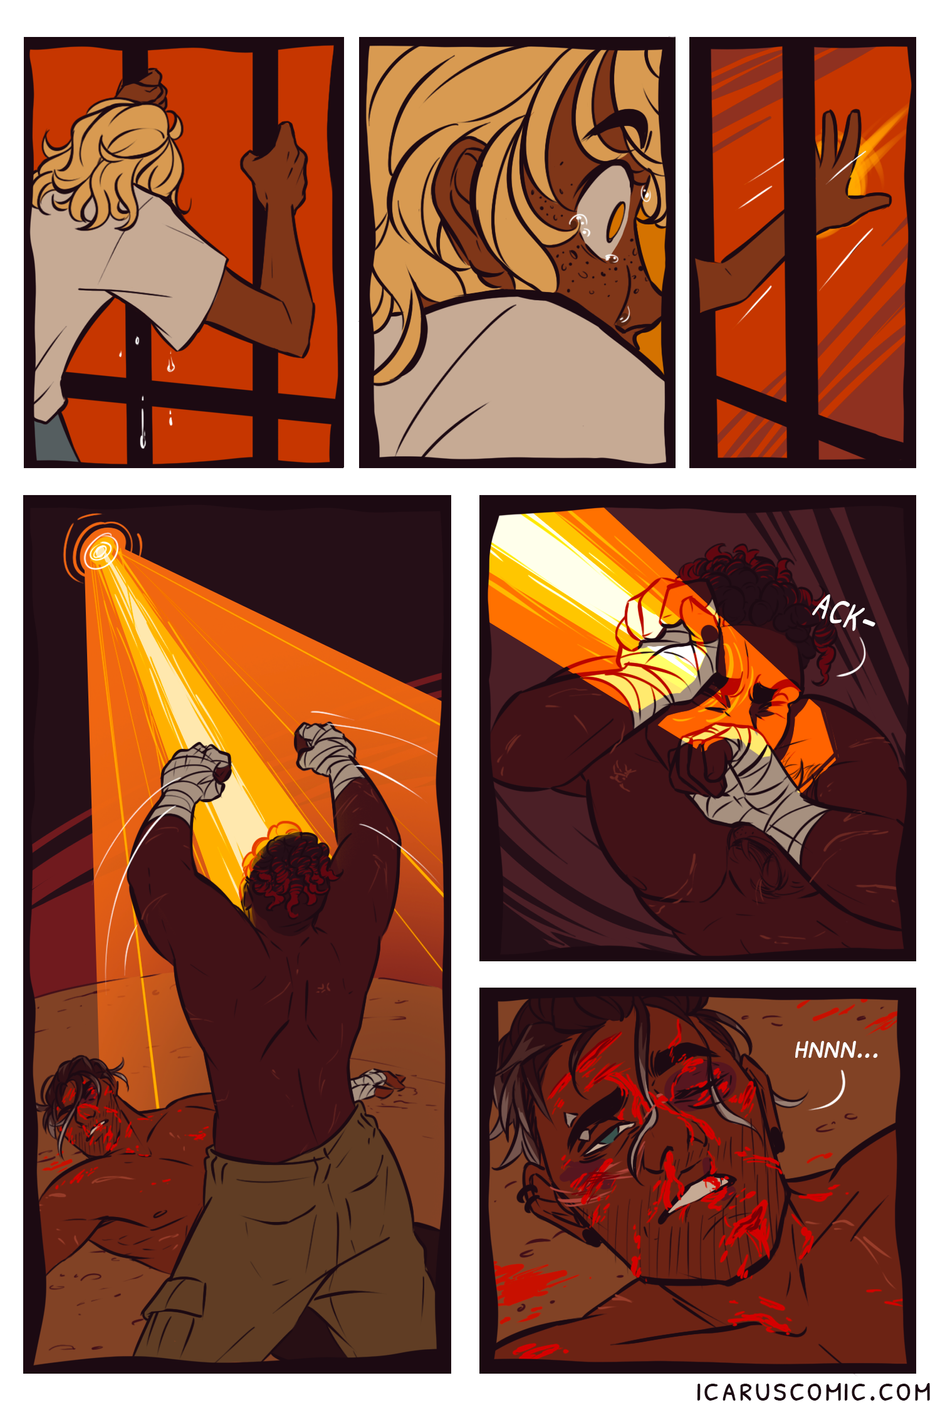 icarus v4 p16.png